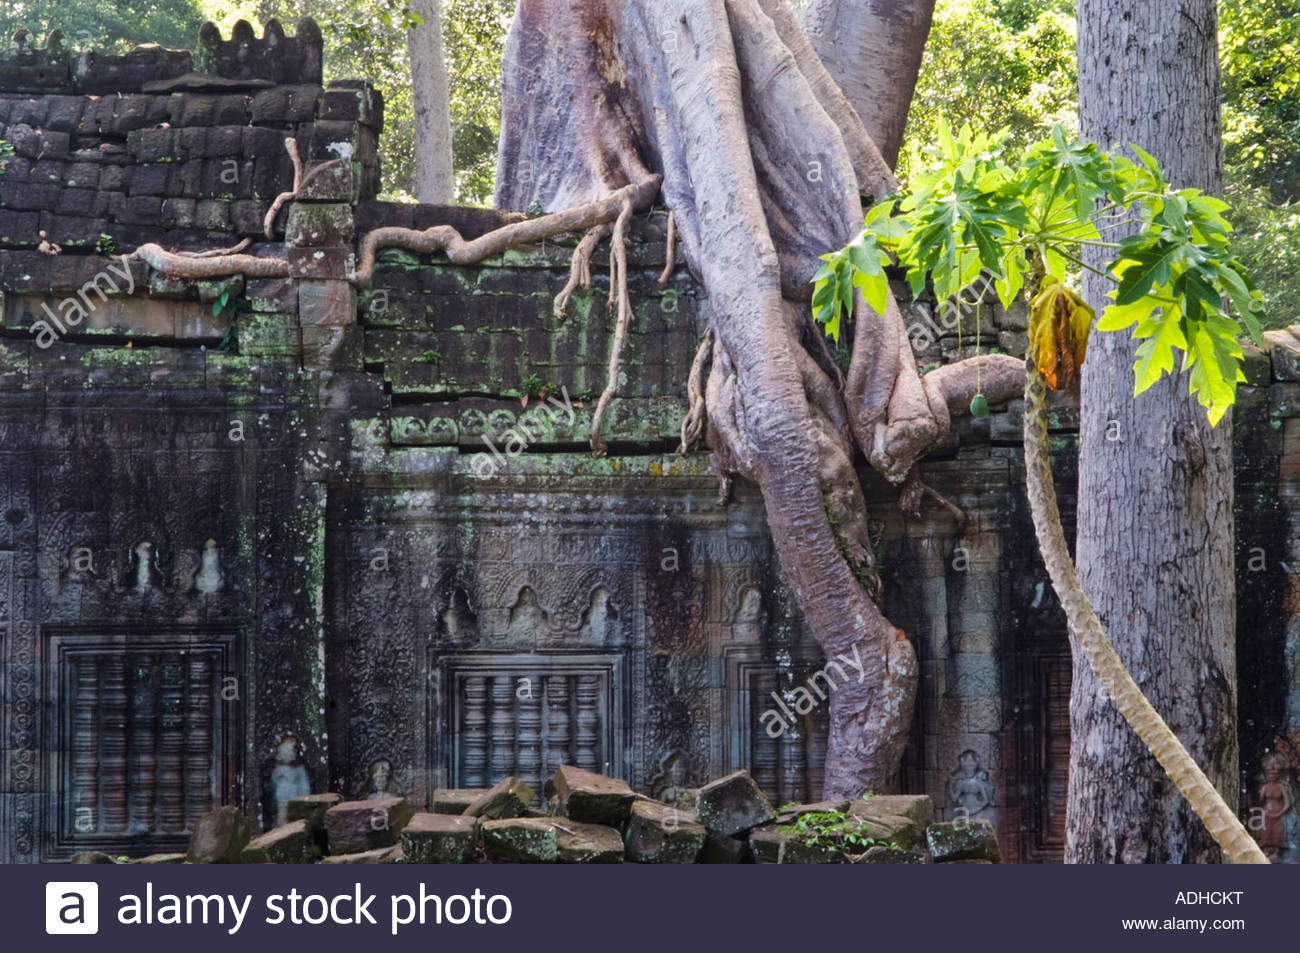 Giant tree roots covering a wall in Ta Phrom temple. Angkor, Cambodia. - Stock Image